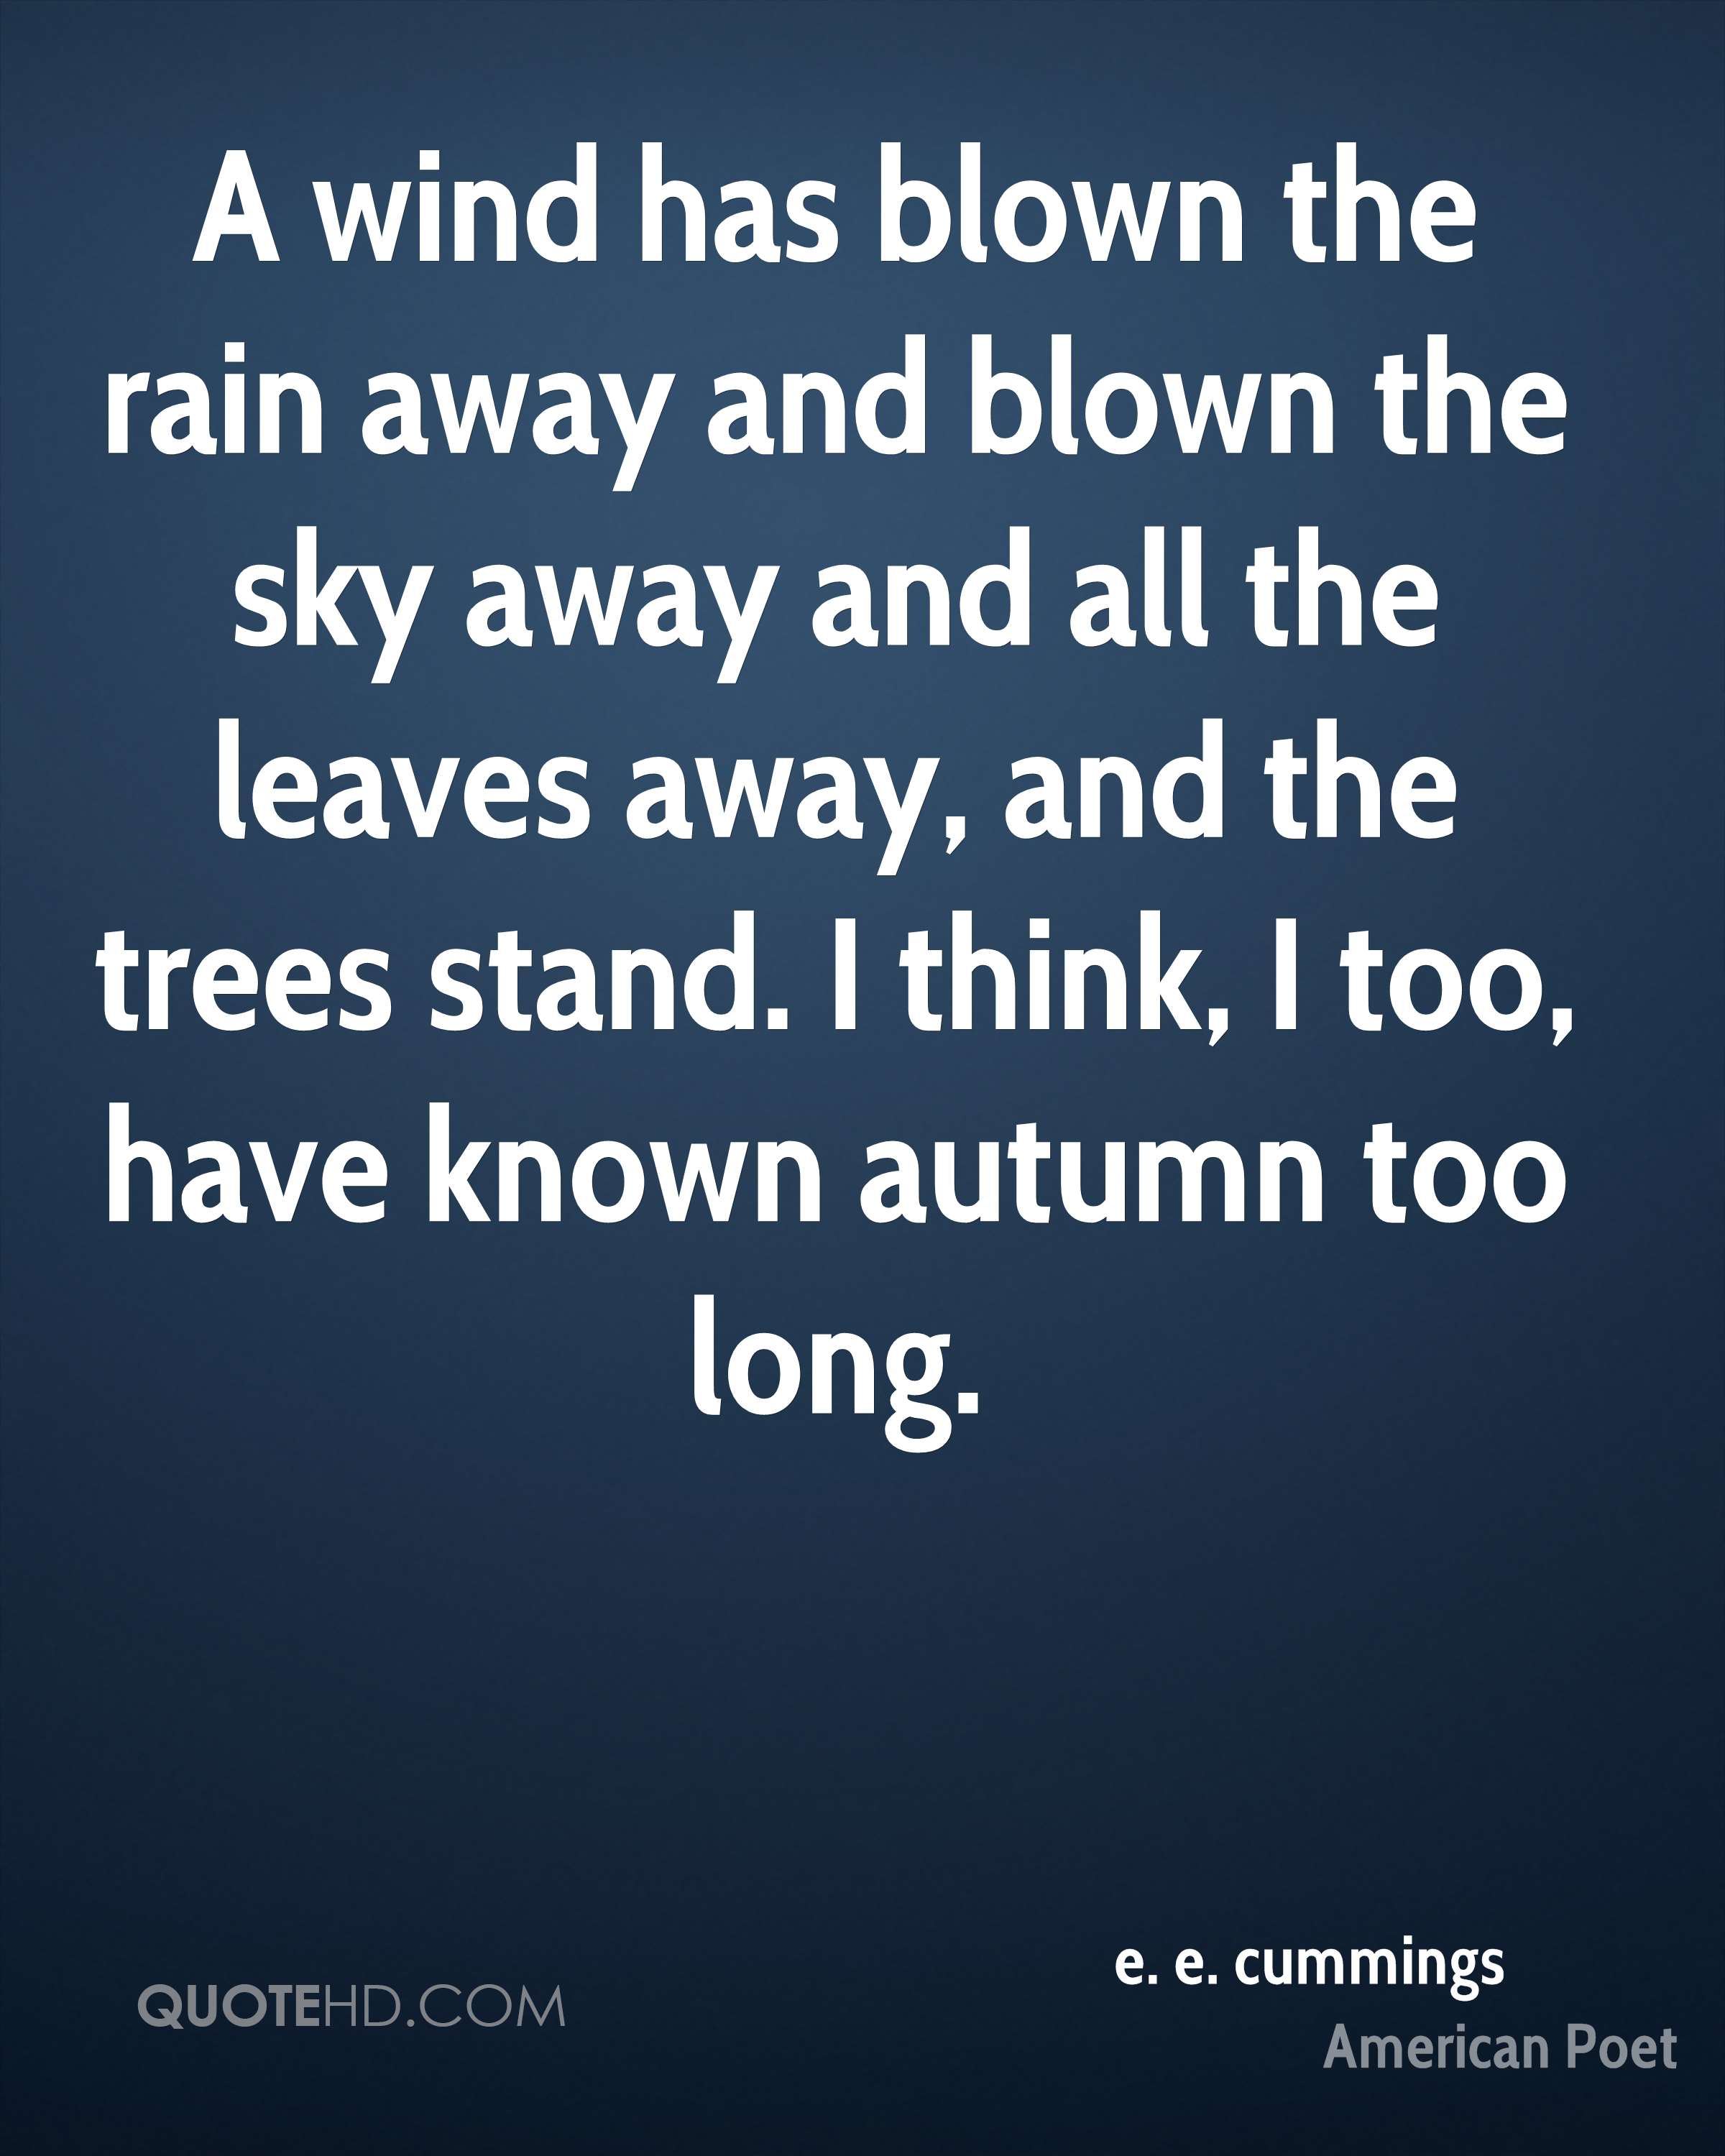 A wind has blown the rain away and blown the sky away and all the leaves away, and the trees stand. I think, I too, have known autumn too long.